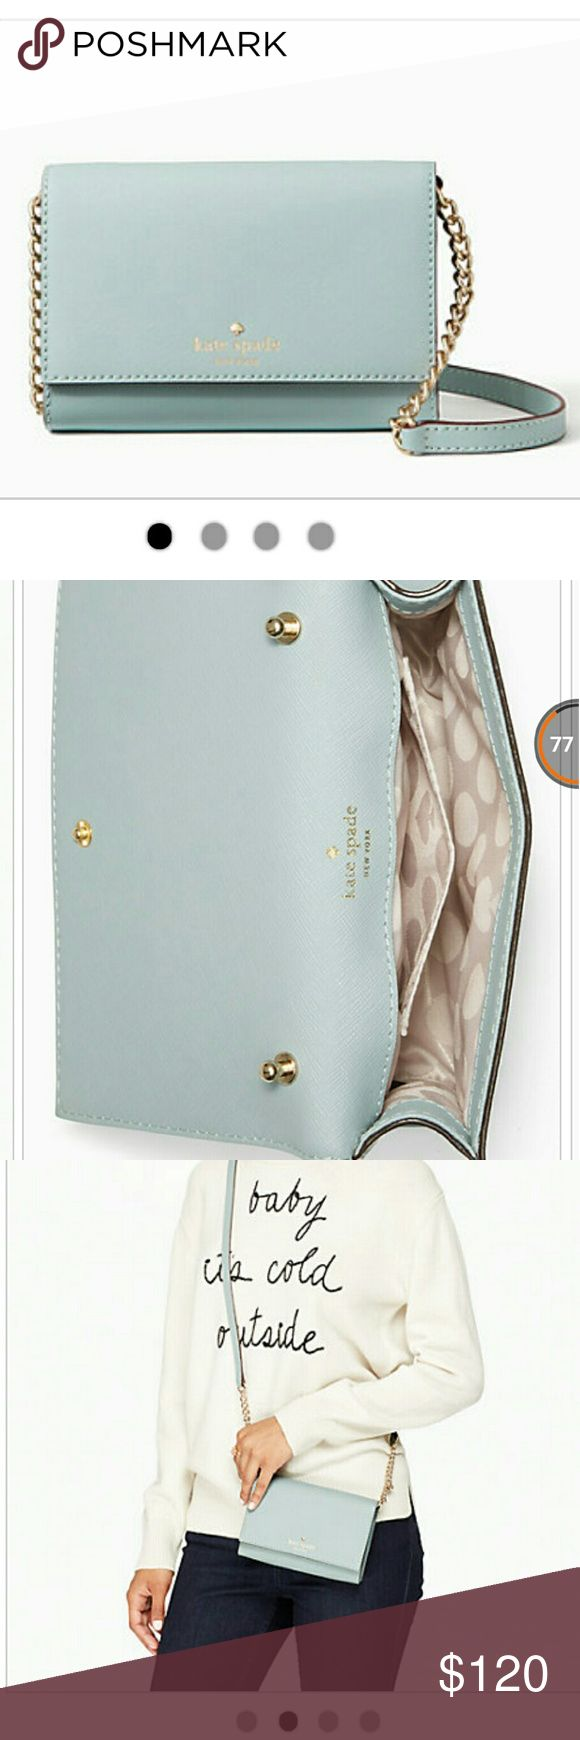 "Kate spade crossbody PLUS FREE GIFT bag/card Brand new with tag kate spade crossbody in color sky blue   Great gift for that special someone; Valentine's Day is coming! Get this Kate Spade cross body and you also get Free Gift bag with tissue and a blank card and envelope   4.5"" h x 6.2"" w x 1"" d drop length: 23.6""  crossbody bag with detachable strap and snap   closure  gold foil emboss with floating metal Spade  dust bag included kate spade Other"